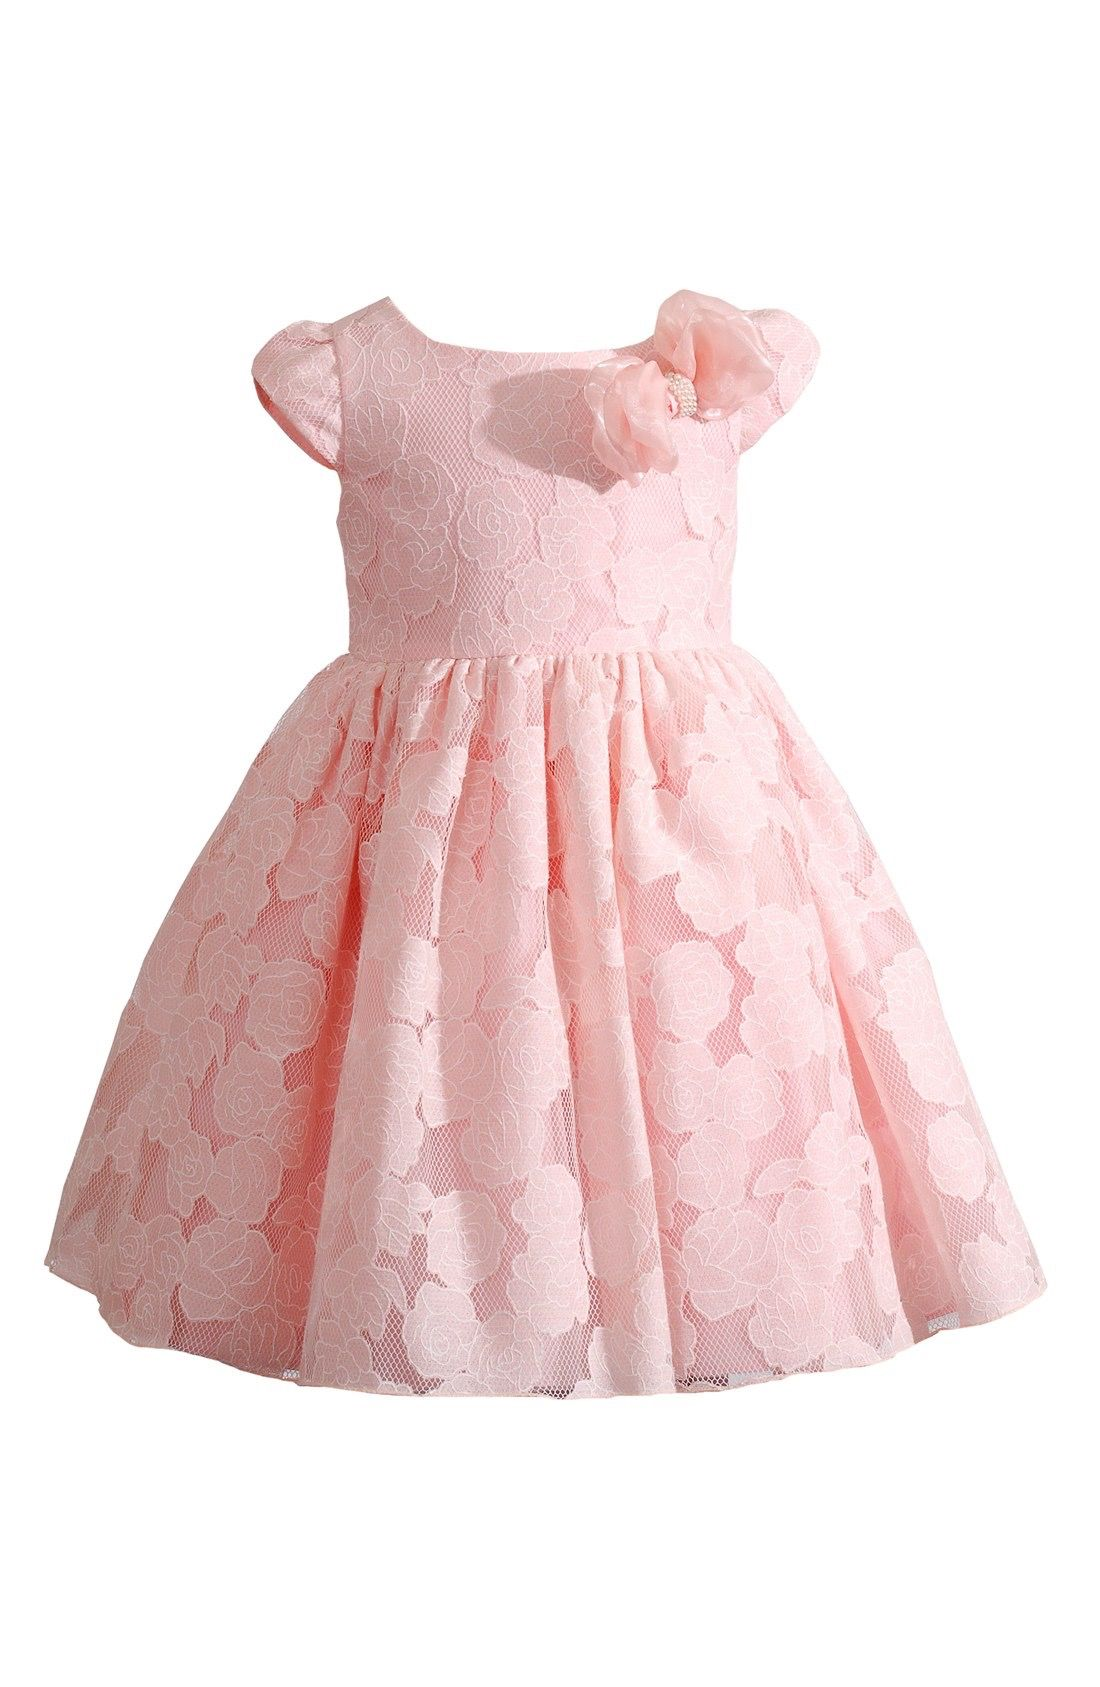 Kleinfeld Pink Burnout Lace Cap Sleeve Dress (Baby Girls) available ...